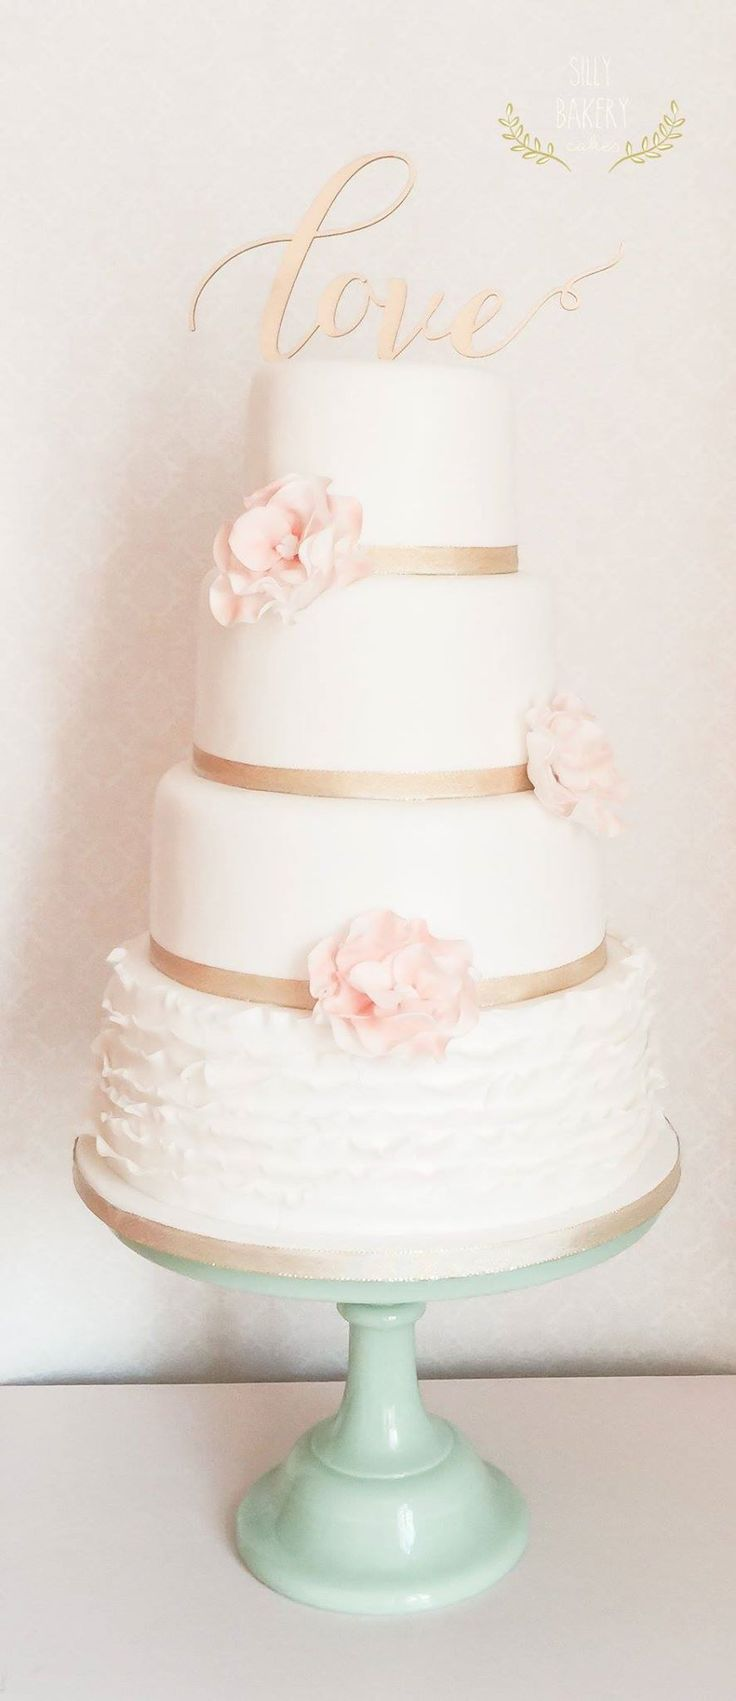 Soft cream and pink wedding cake with